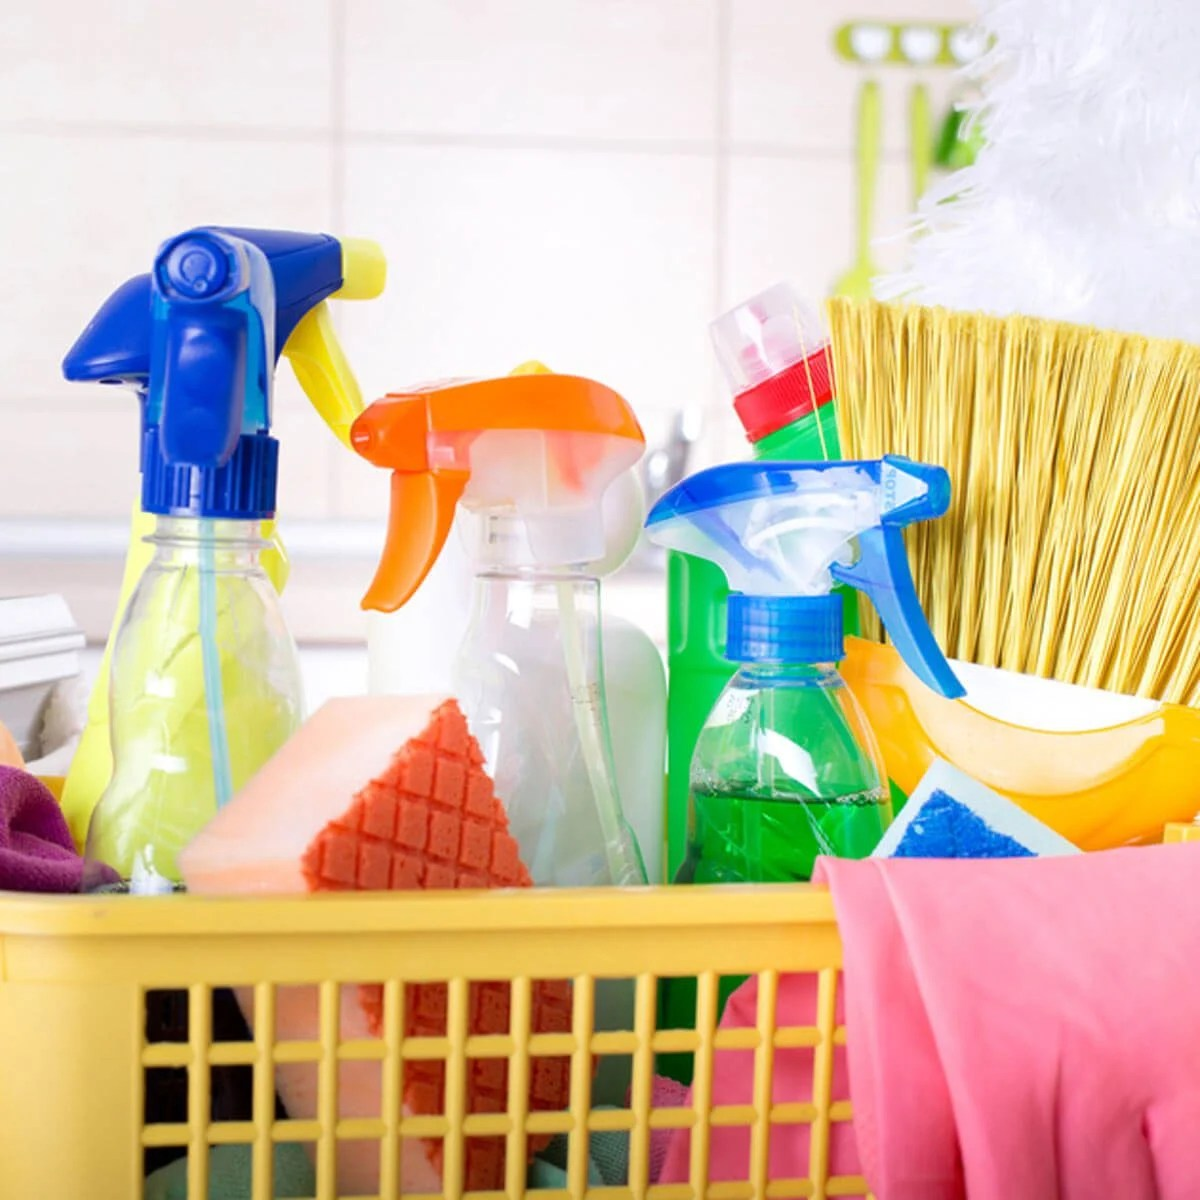 12 Hazardous Household Items And How To Get Rid Of Them